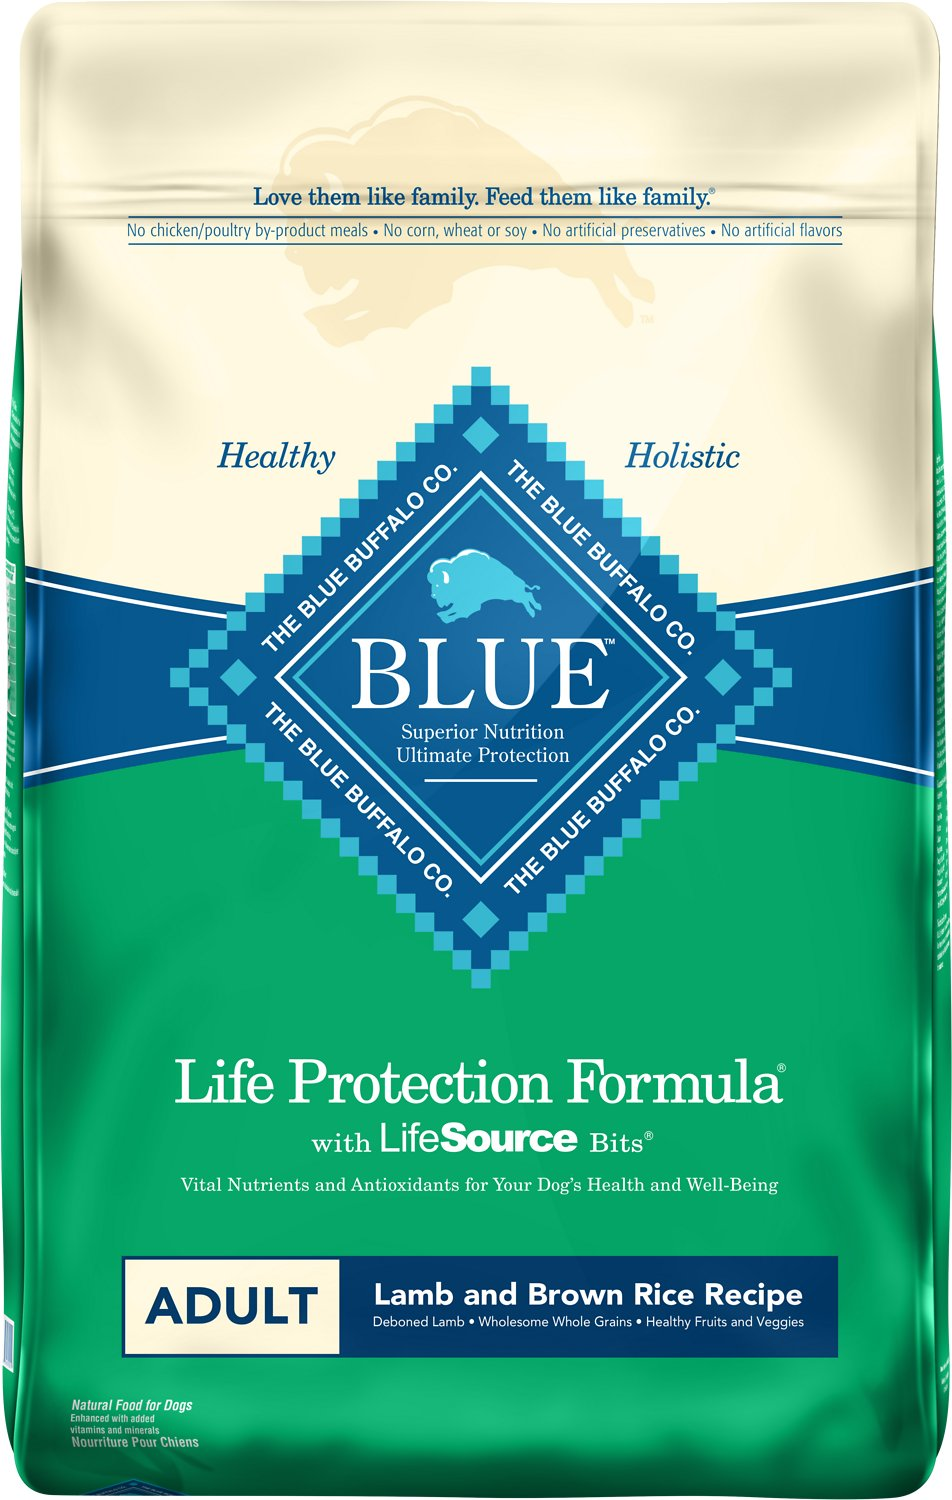 Blue Buffalo Life Protection Formula Adult Lamb & Brown Rice Recipe Dry Dog Food Image